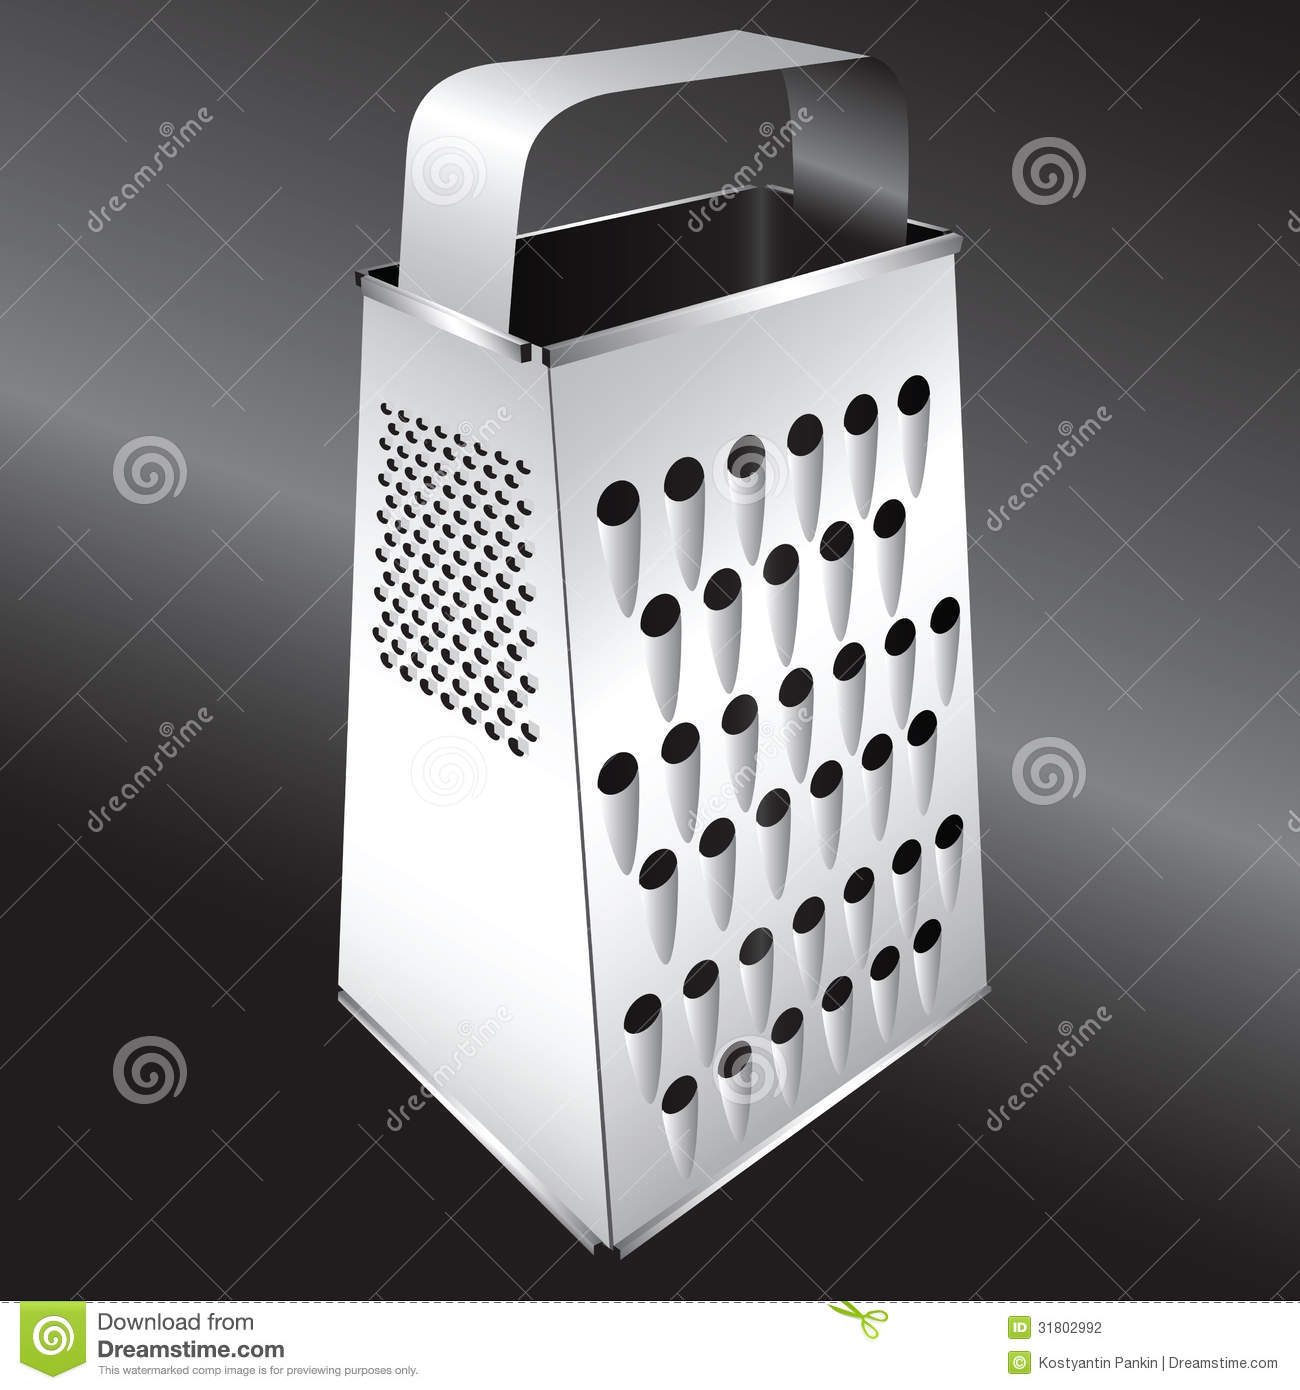 Kitchen Equipment - Grater Stock Photography - Image: 31802992